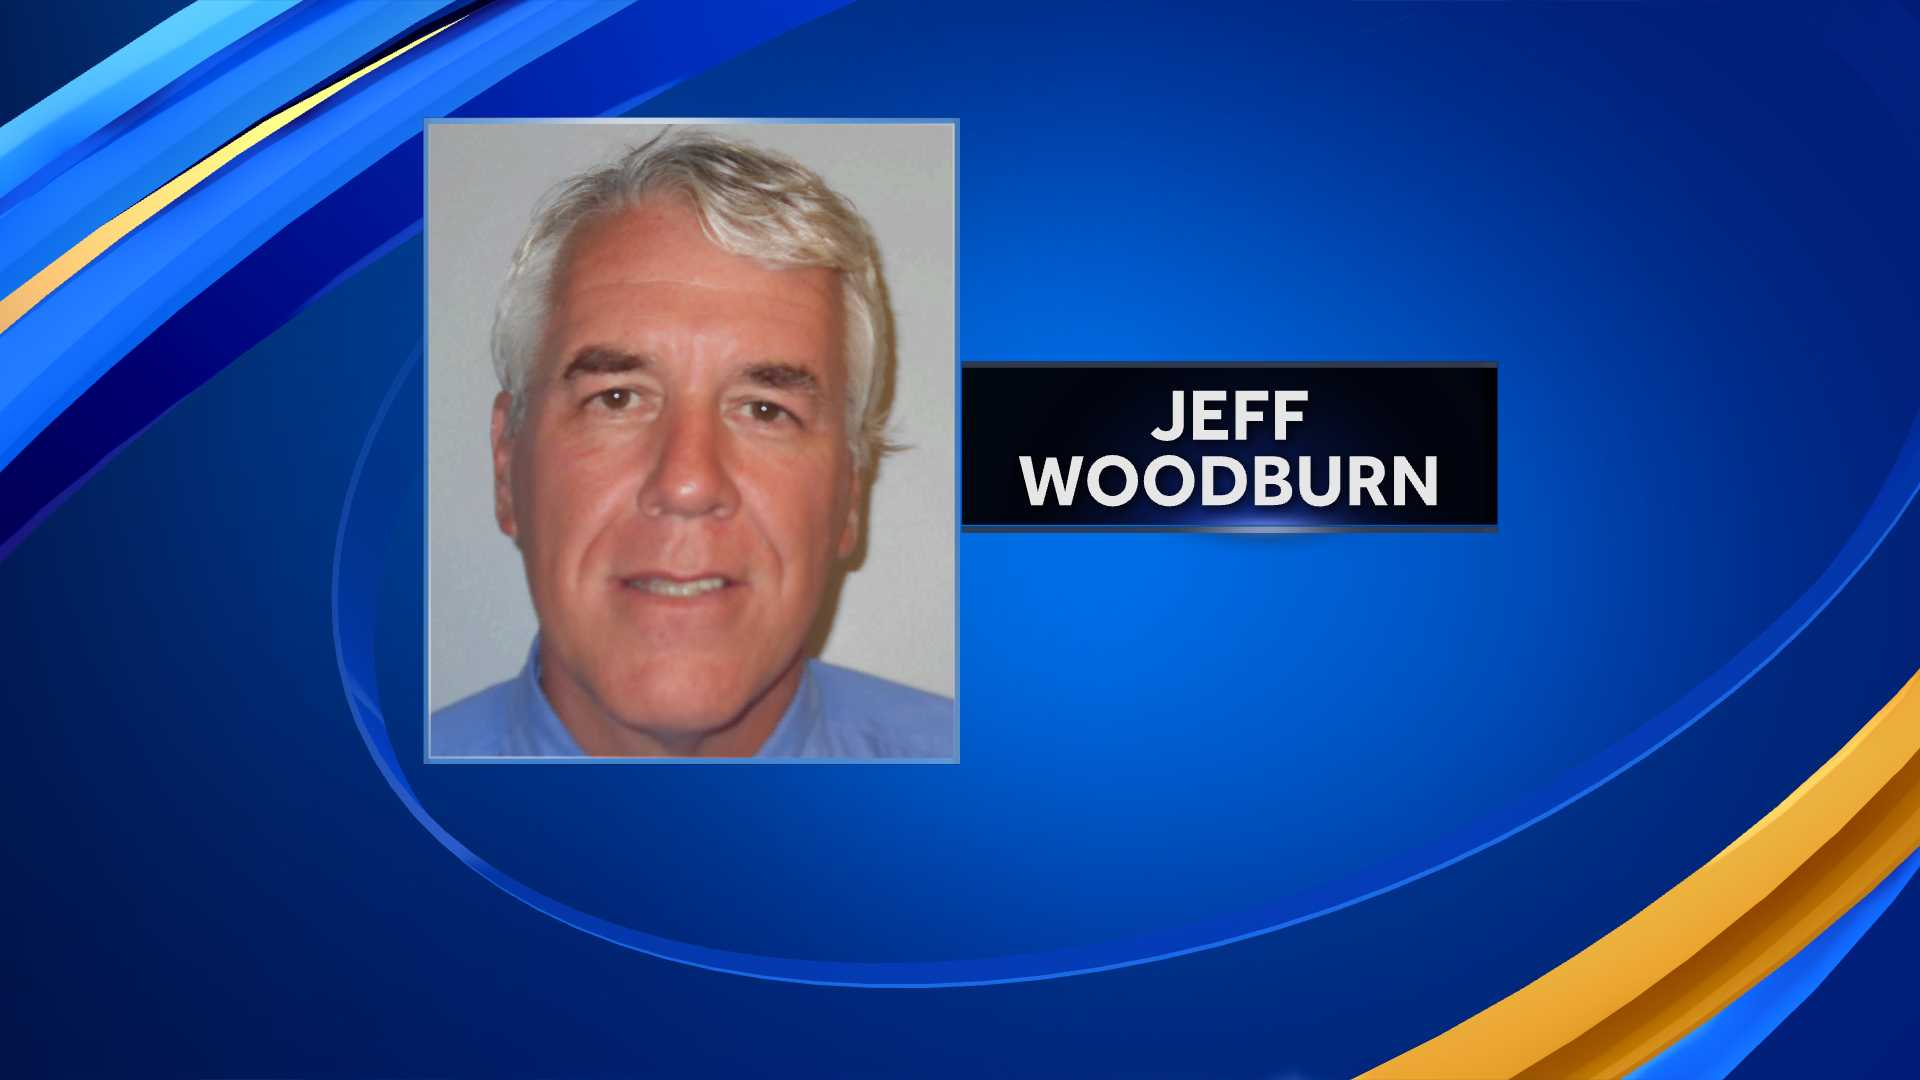 Sen. Woodburn waives arraignment, enters not guilty pleas to nine misdemeanor charges